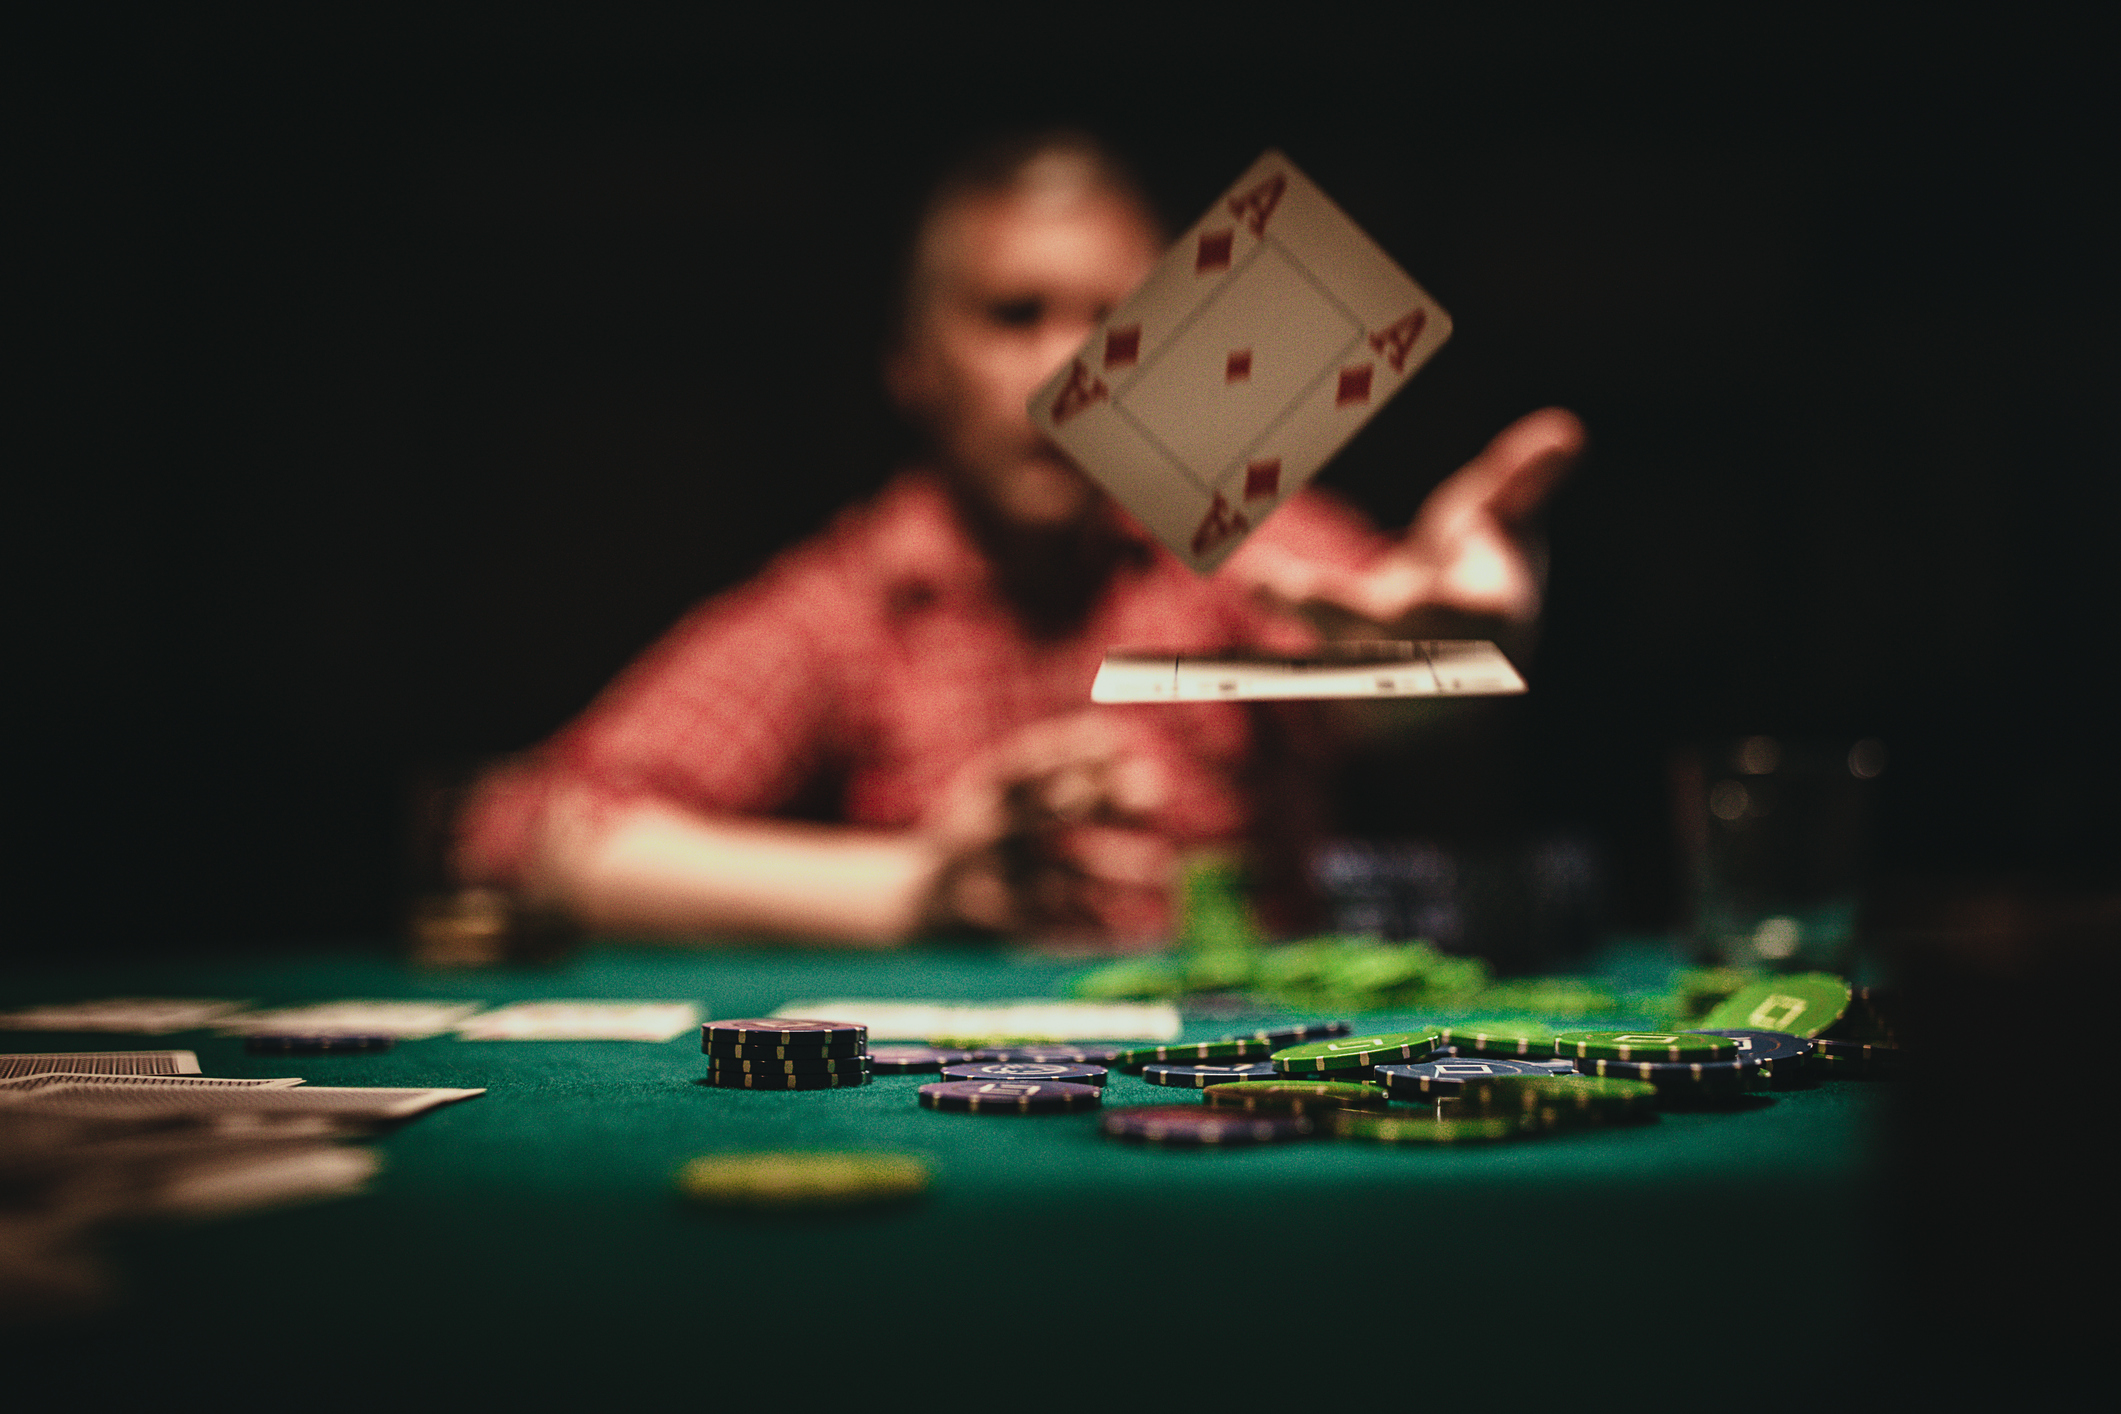 card dealer at a casino table